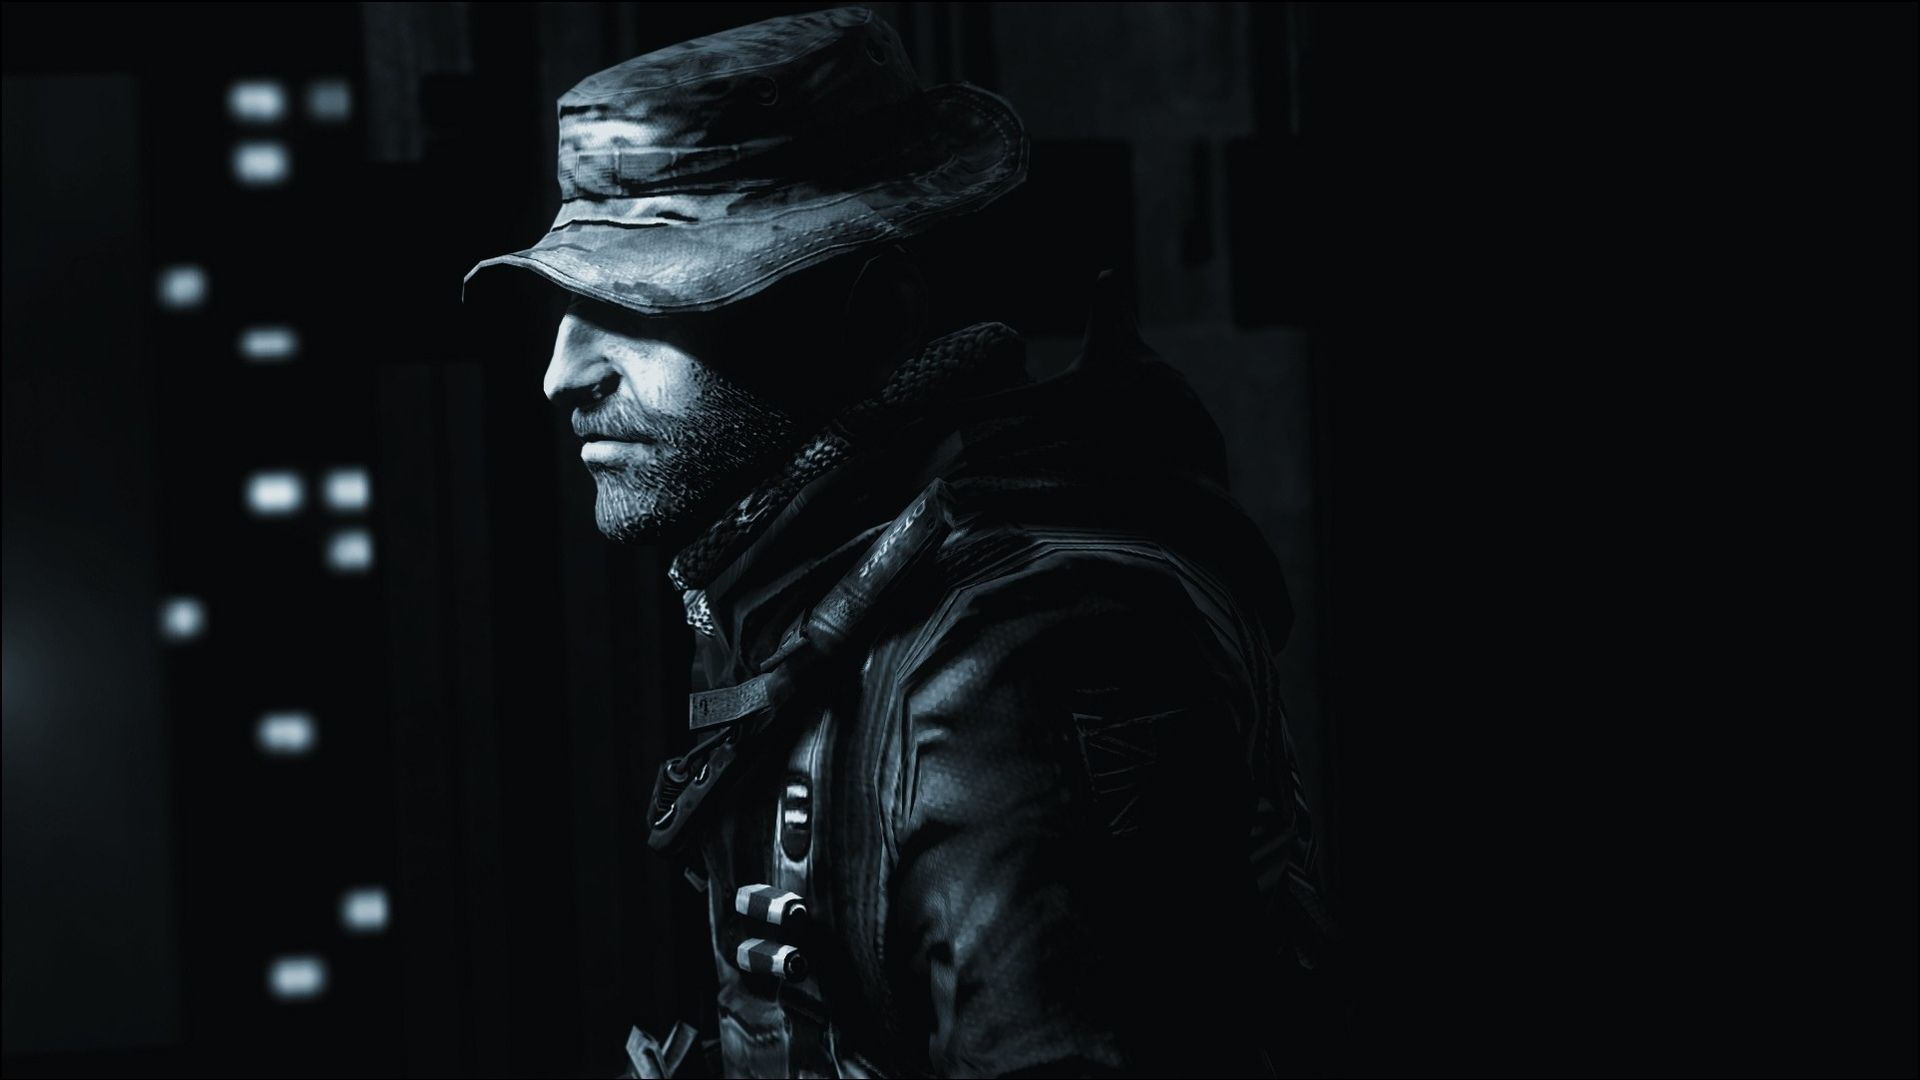 Captain Price Call Of Duty Hd Wallpaper Wallpapers Pictures Photos Call Of Duty Modern Warfare Call Of Duty Black